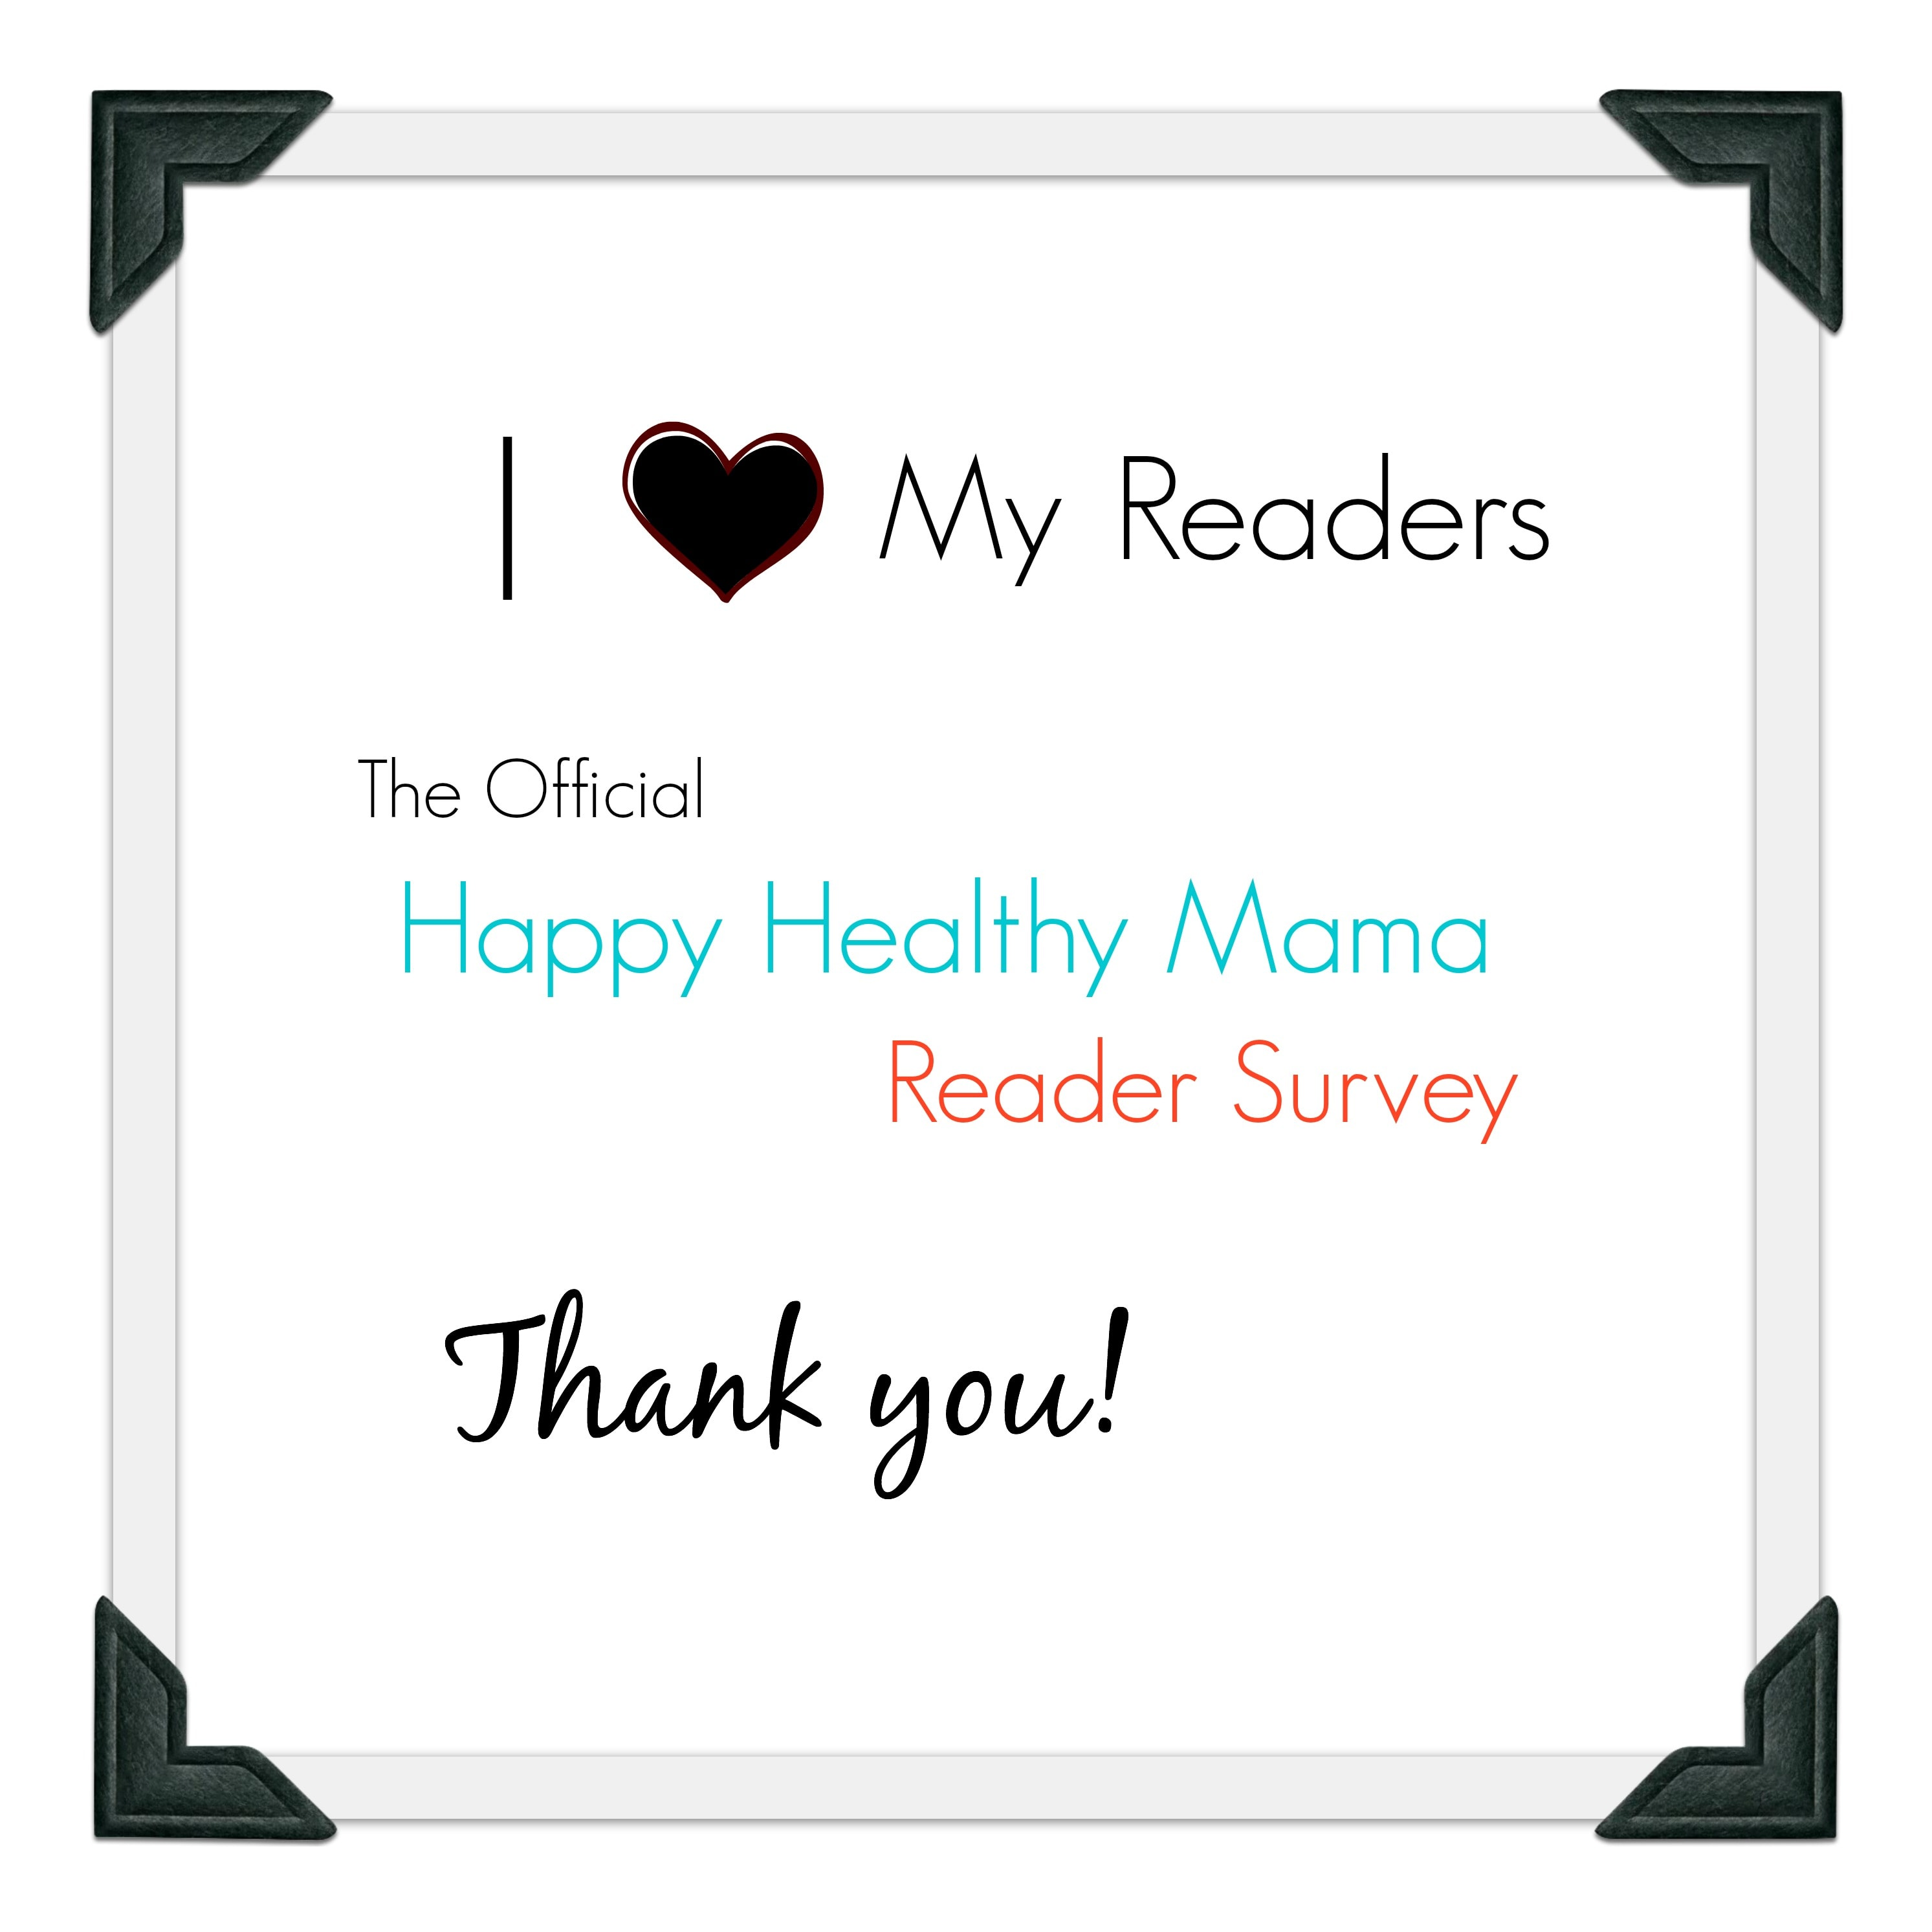 What do you think? The Official Reader Survey